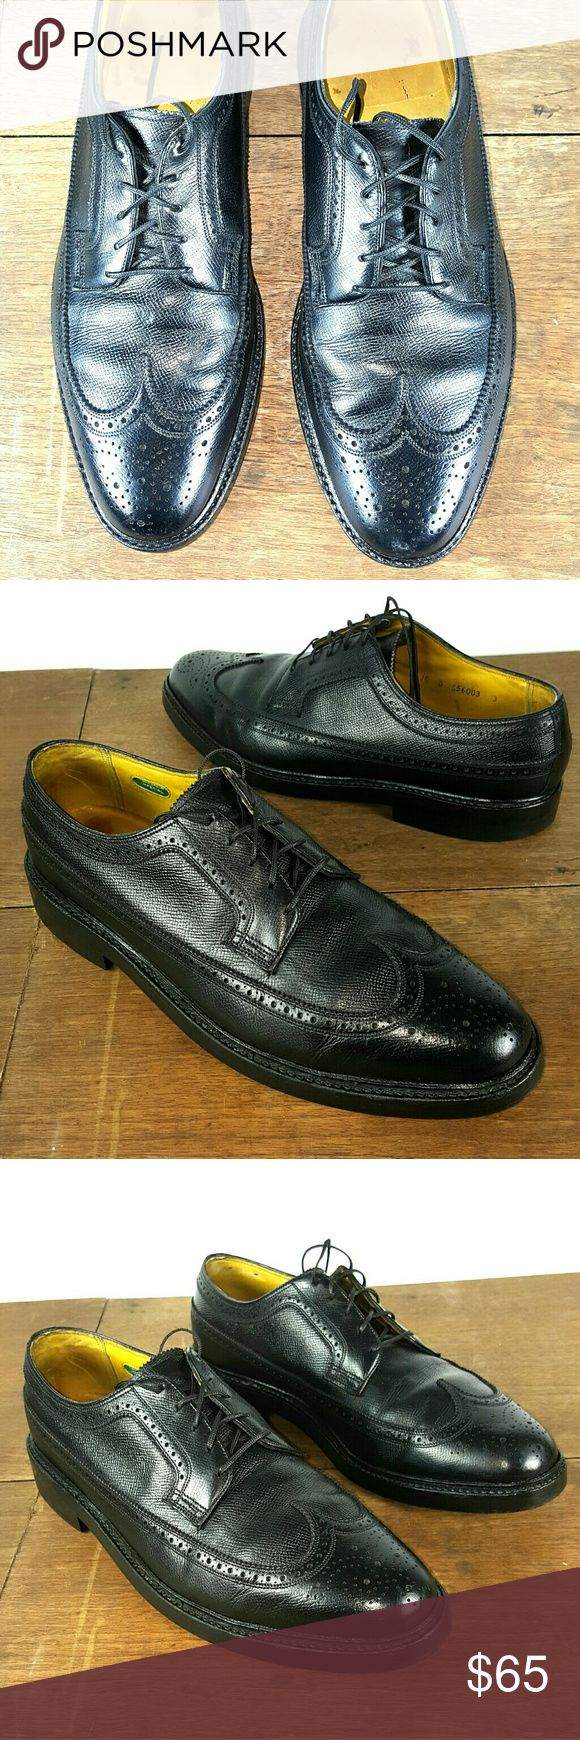 Nice Vintage Florsheim Imperial Wingtip, Size 10D Nice Vintage Florsheim Imperial Wingtip Men's Black Leather Oxford in clean and good condition,  size 10D. Thanks for Your interest, questions and offers are welcome. Florsheim Shoes Oxfords & Derbys